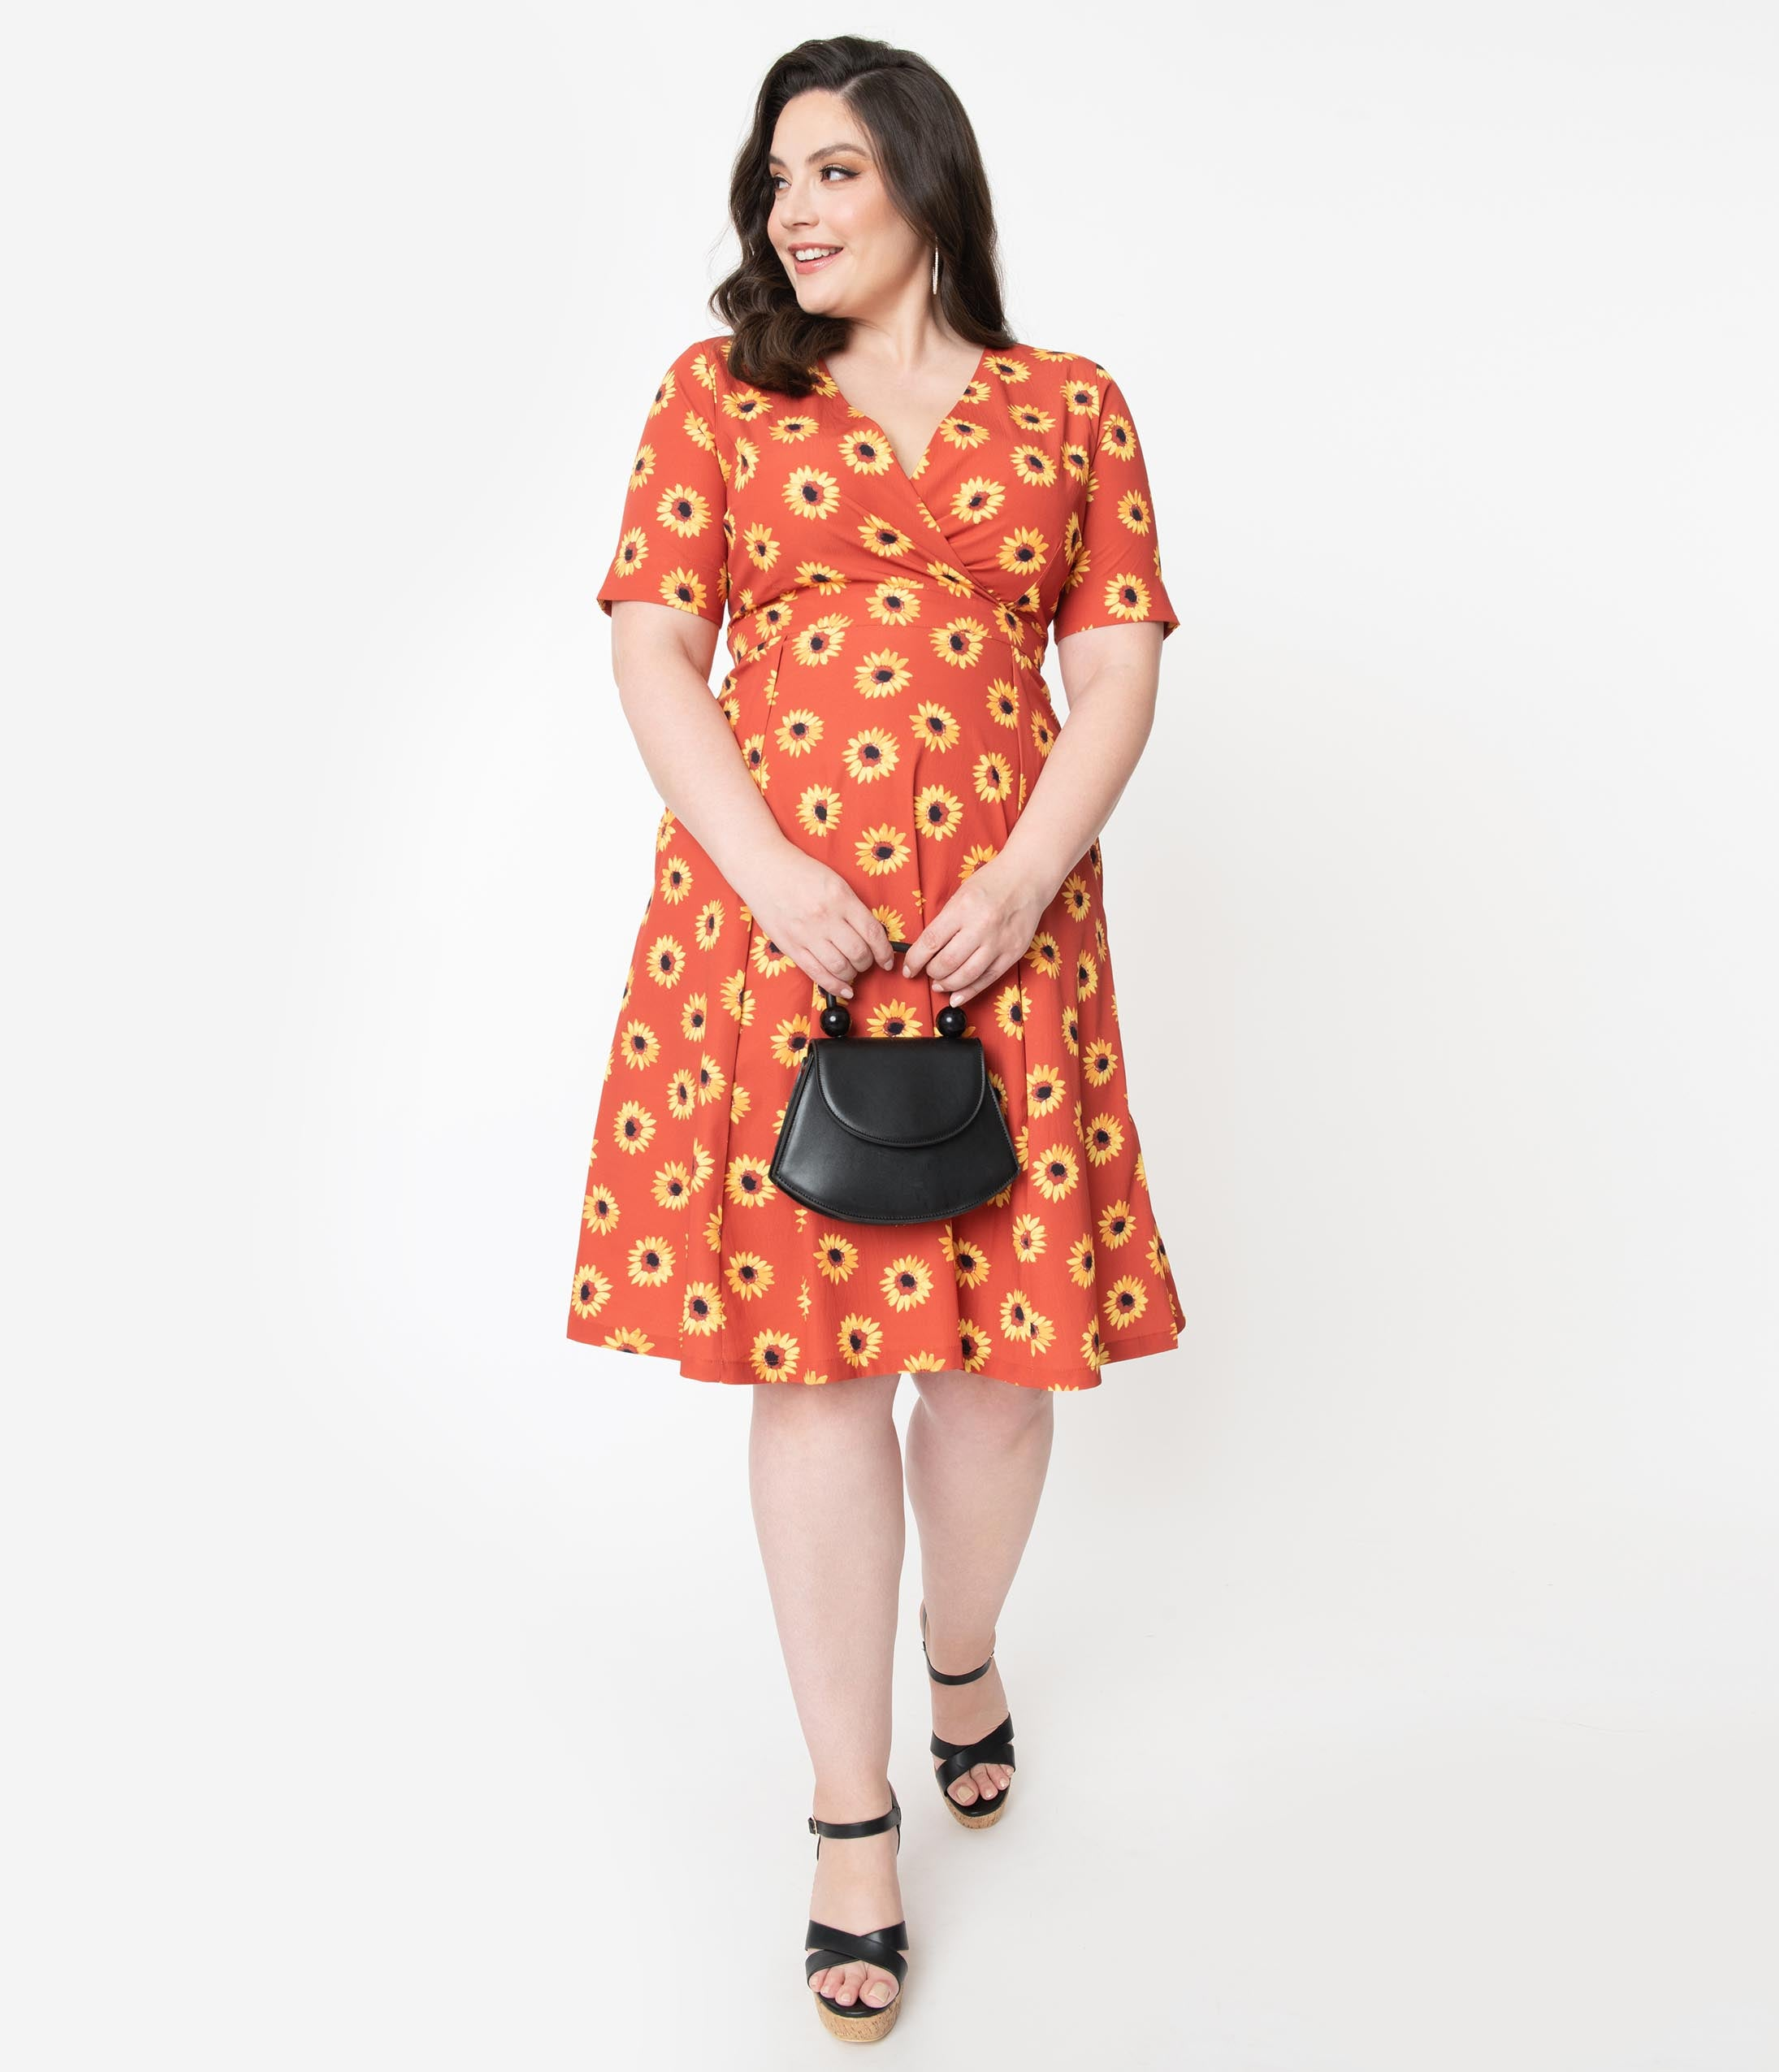 60s 70s Plus Size Dresses, Clothing, Costumes Plus Size Rust  Yellow Sunflower Print Stephanie Swing Dress $78.00 AT vintagedancer.com